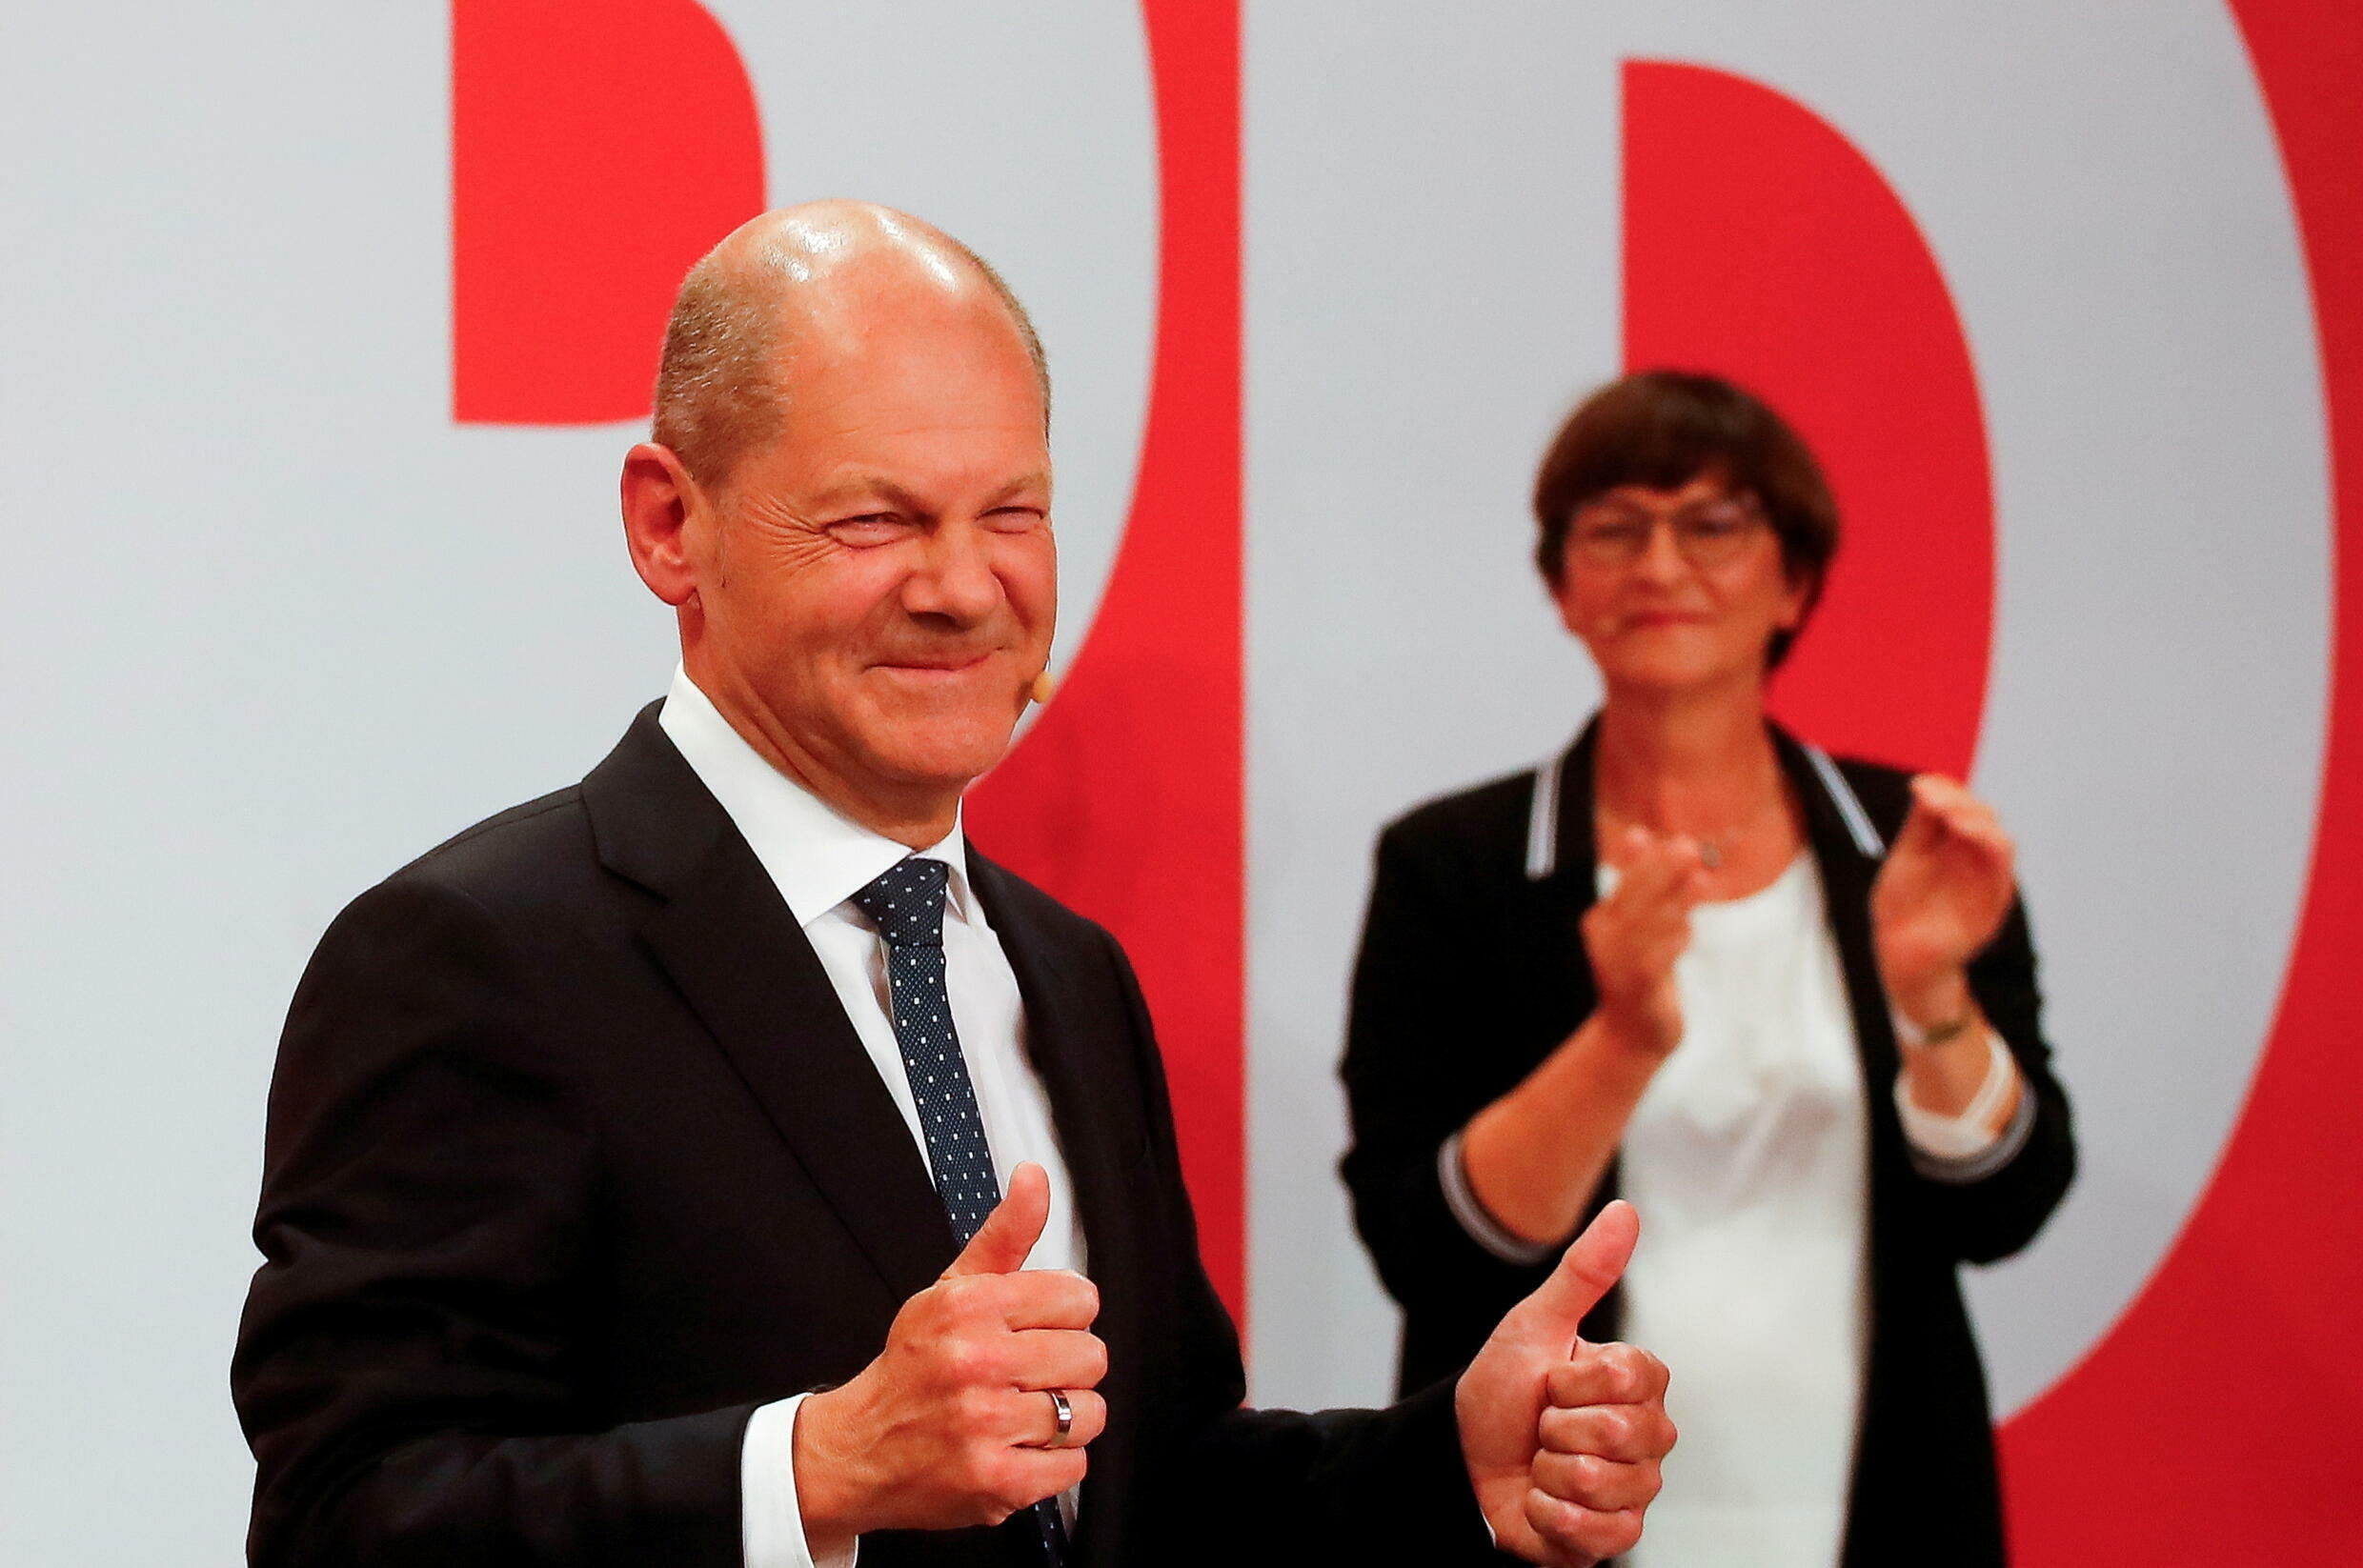 2021-09-27T043225Z_2033455328_RC24YP9EQ3UO_RTRMADP_3_GERMANY-ELECTION